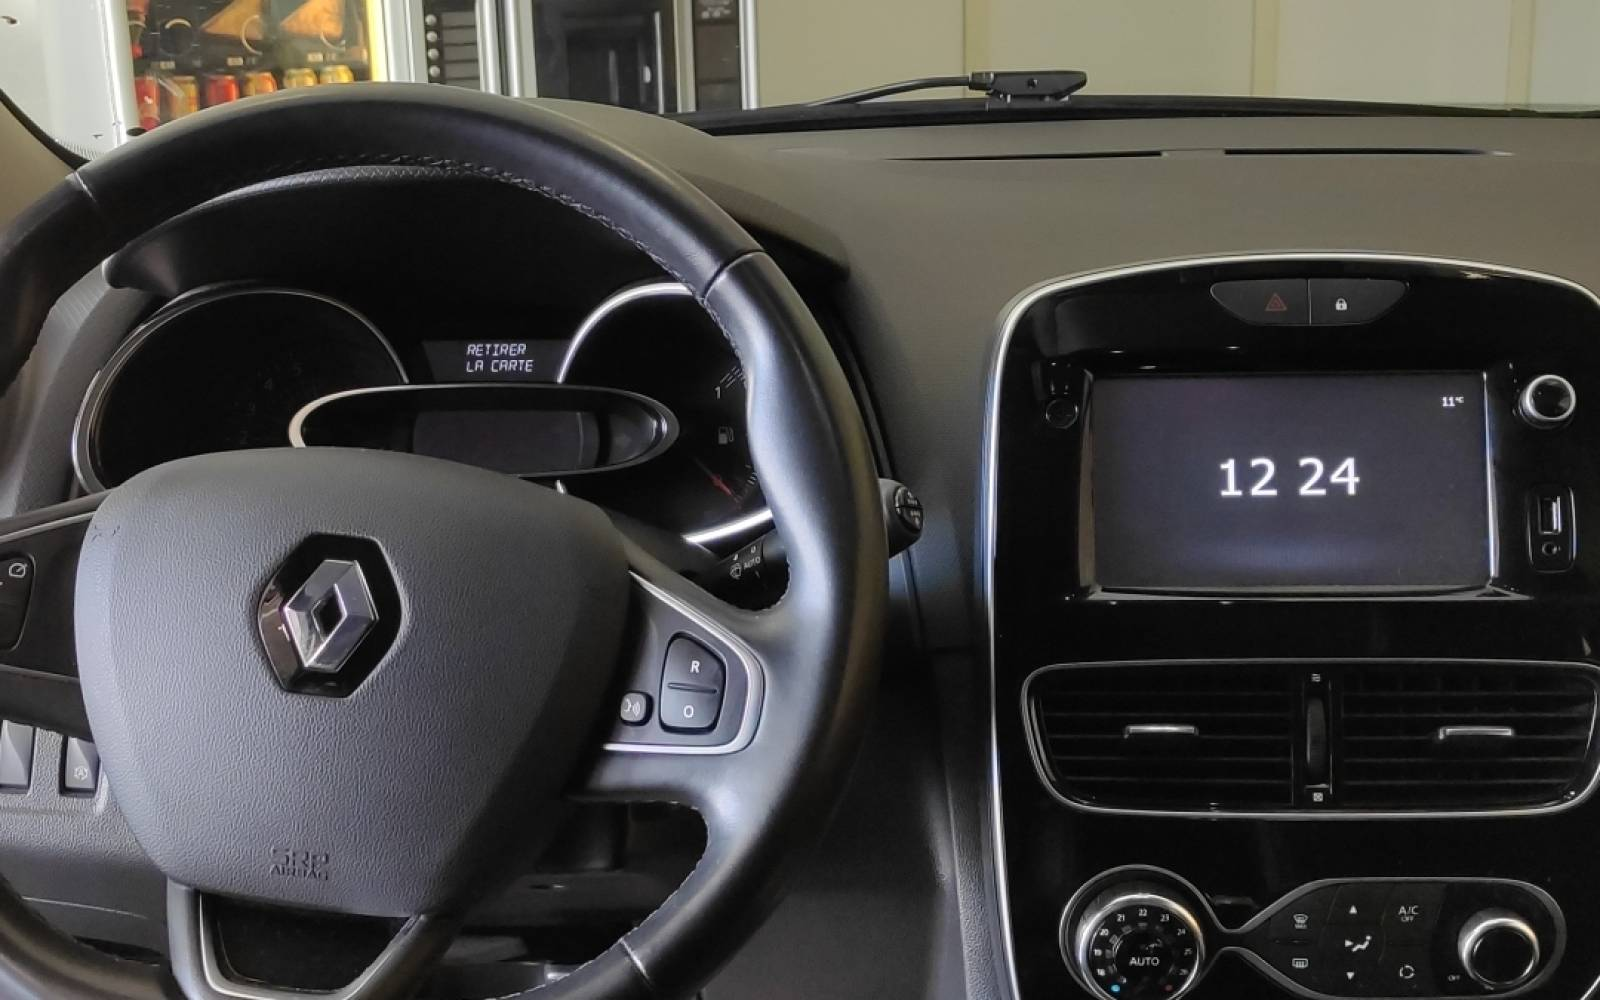 RENAULT Clio TCe 90 Energy - véhicule d'occasion - Site Internet Faurie - Sarda - 24750 - Trelissac - 10